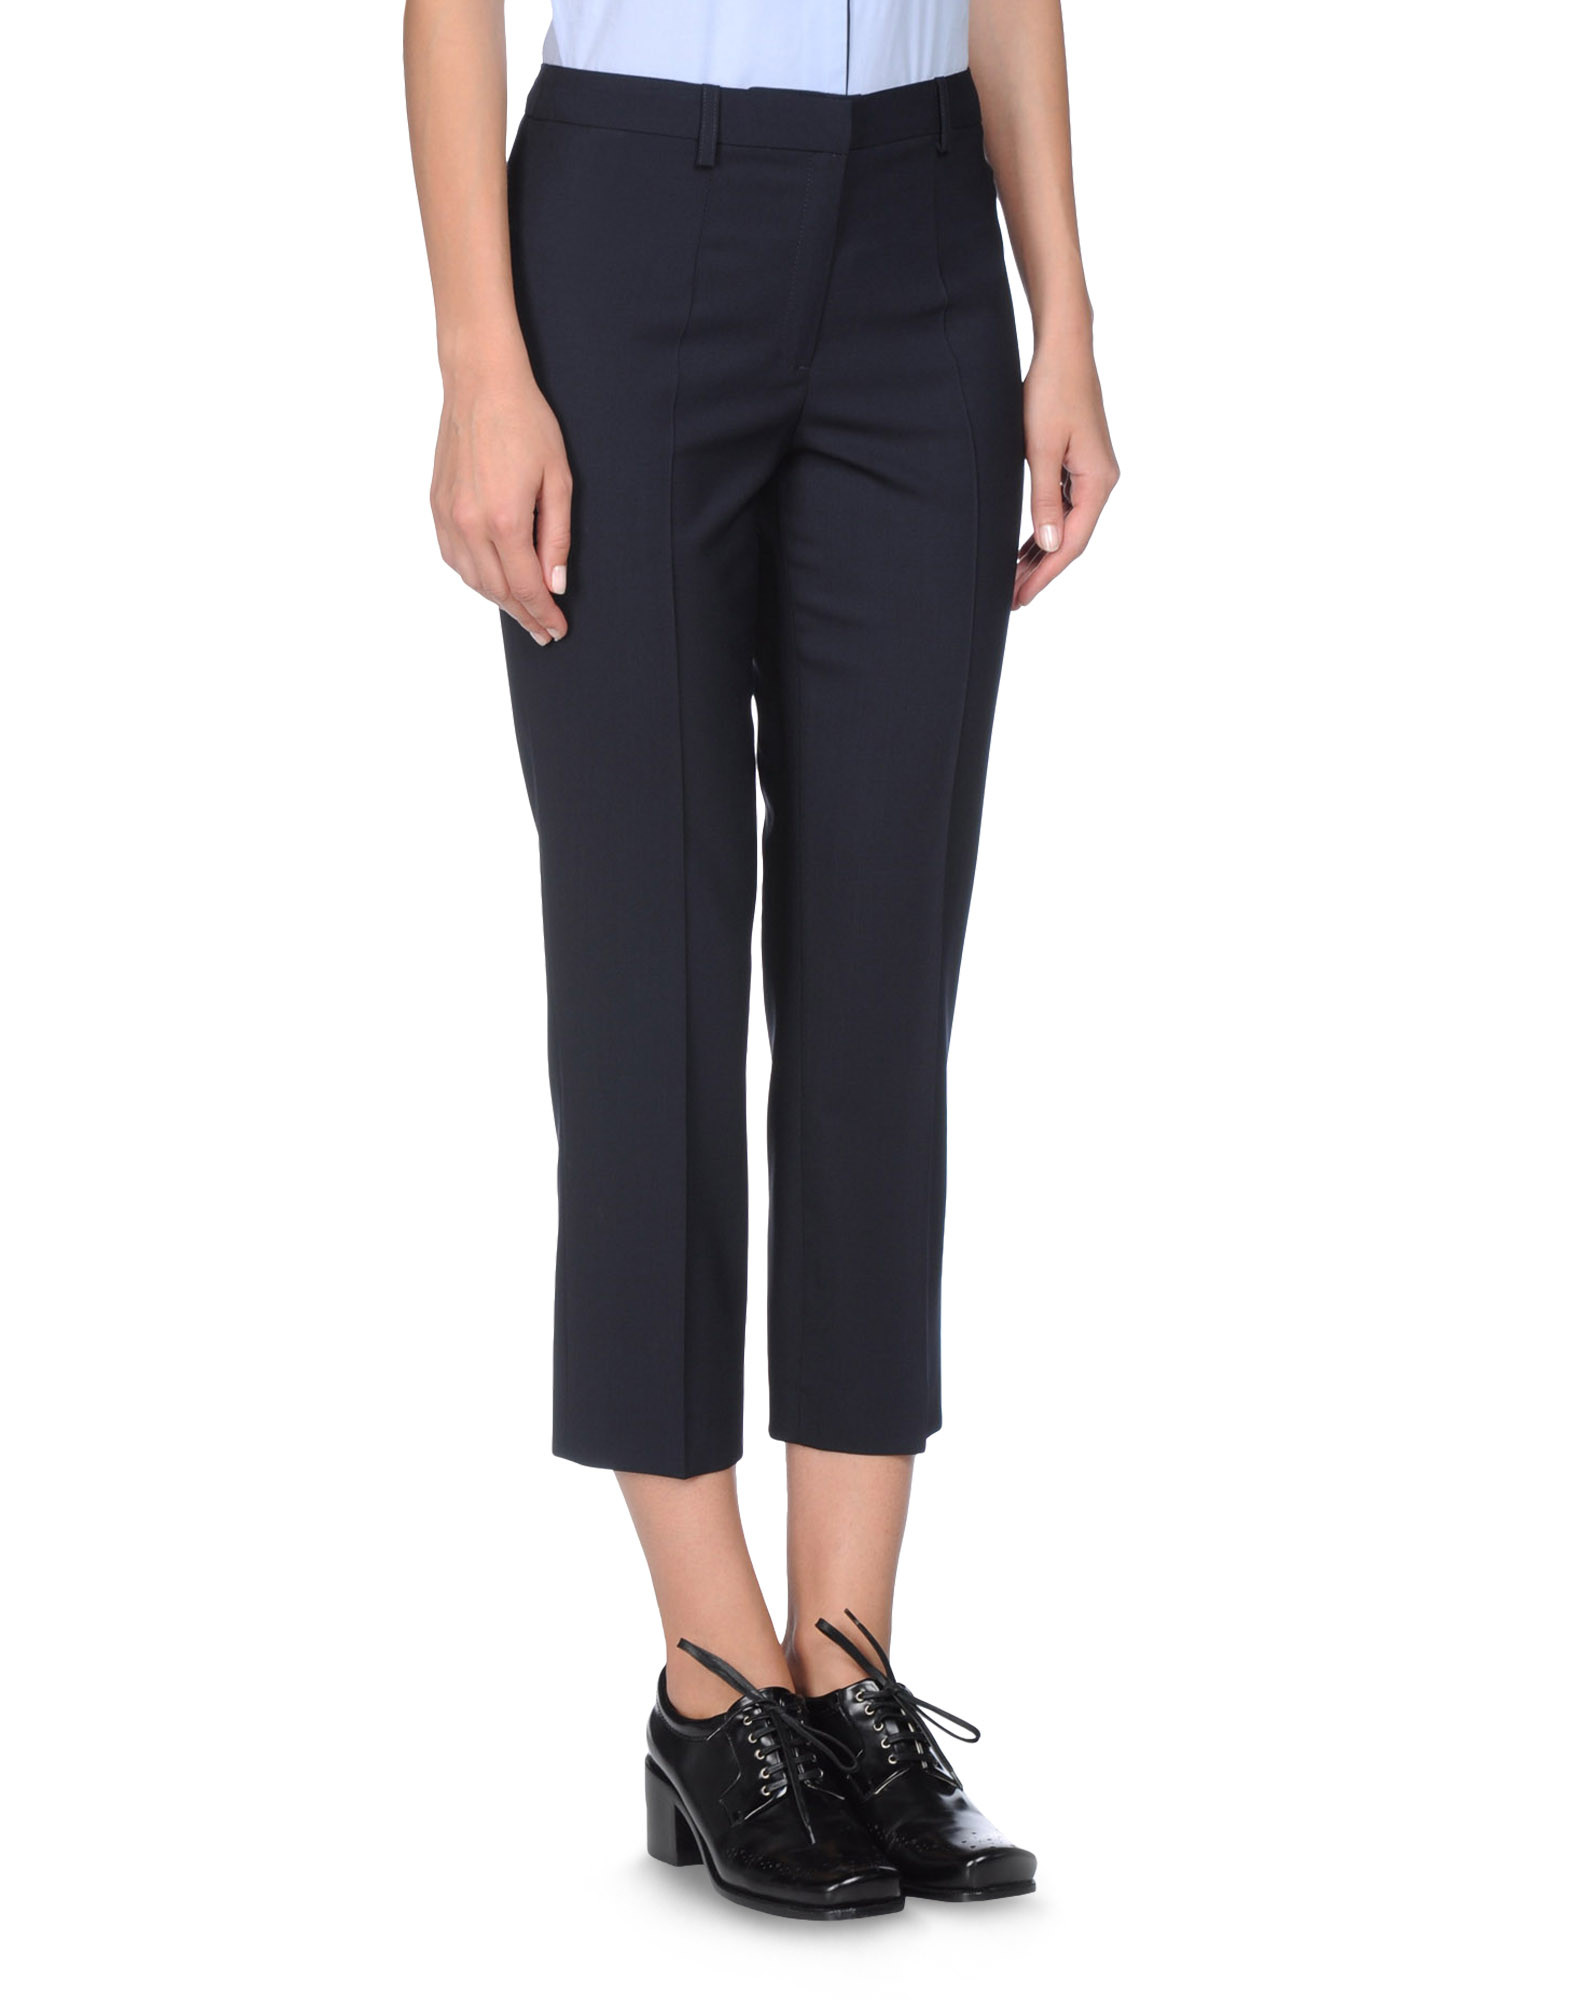 Tailored Trouser - JIL SANDER NAVY Online Store